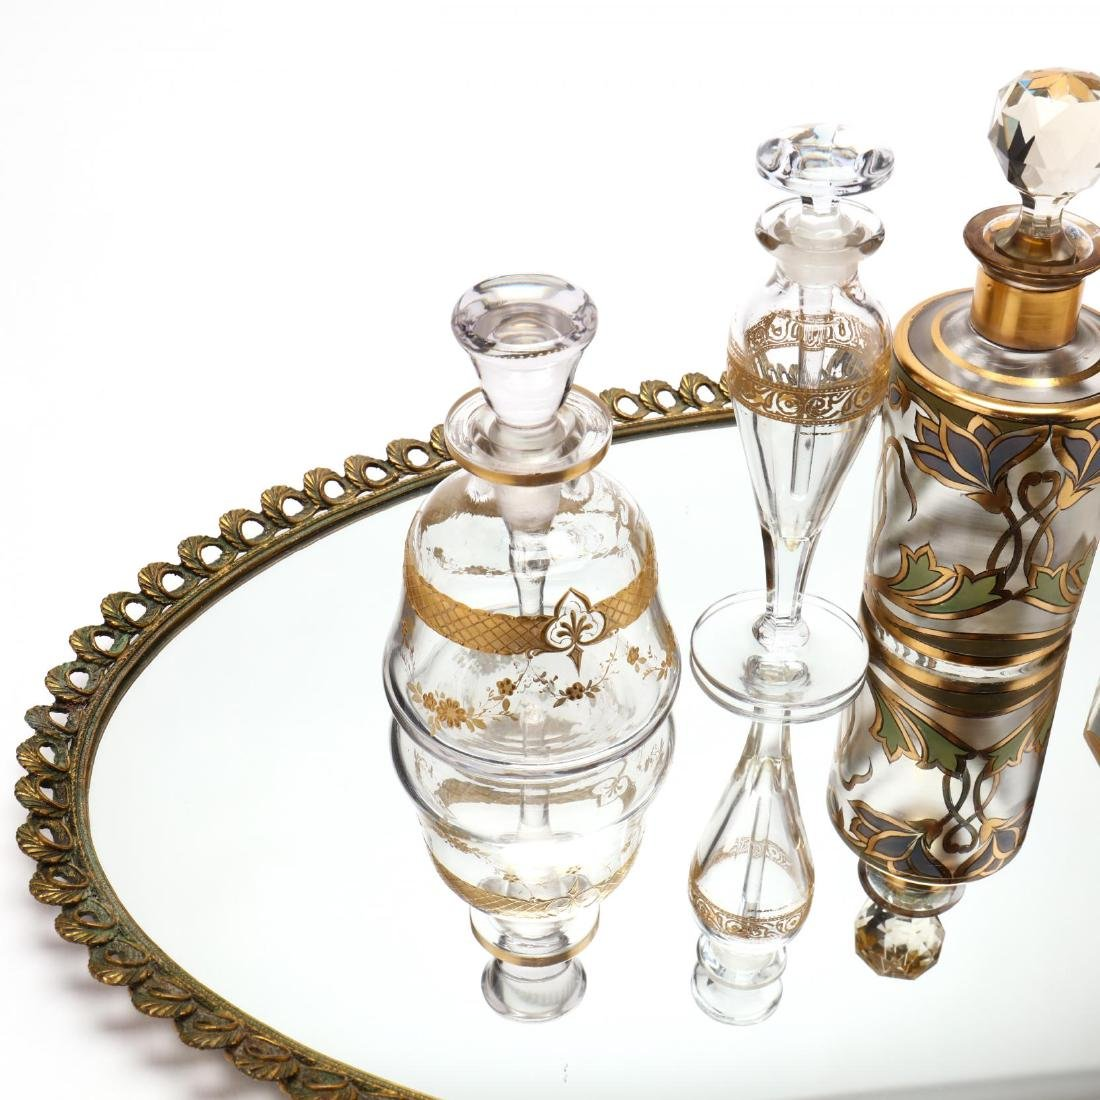 A Vintage Vanity Tray and Four Antique Scent Bottles - 3